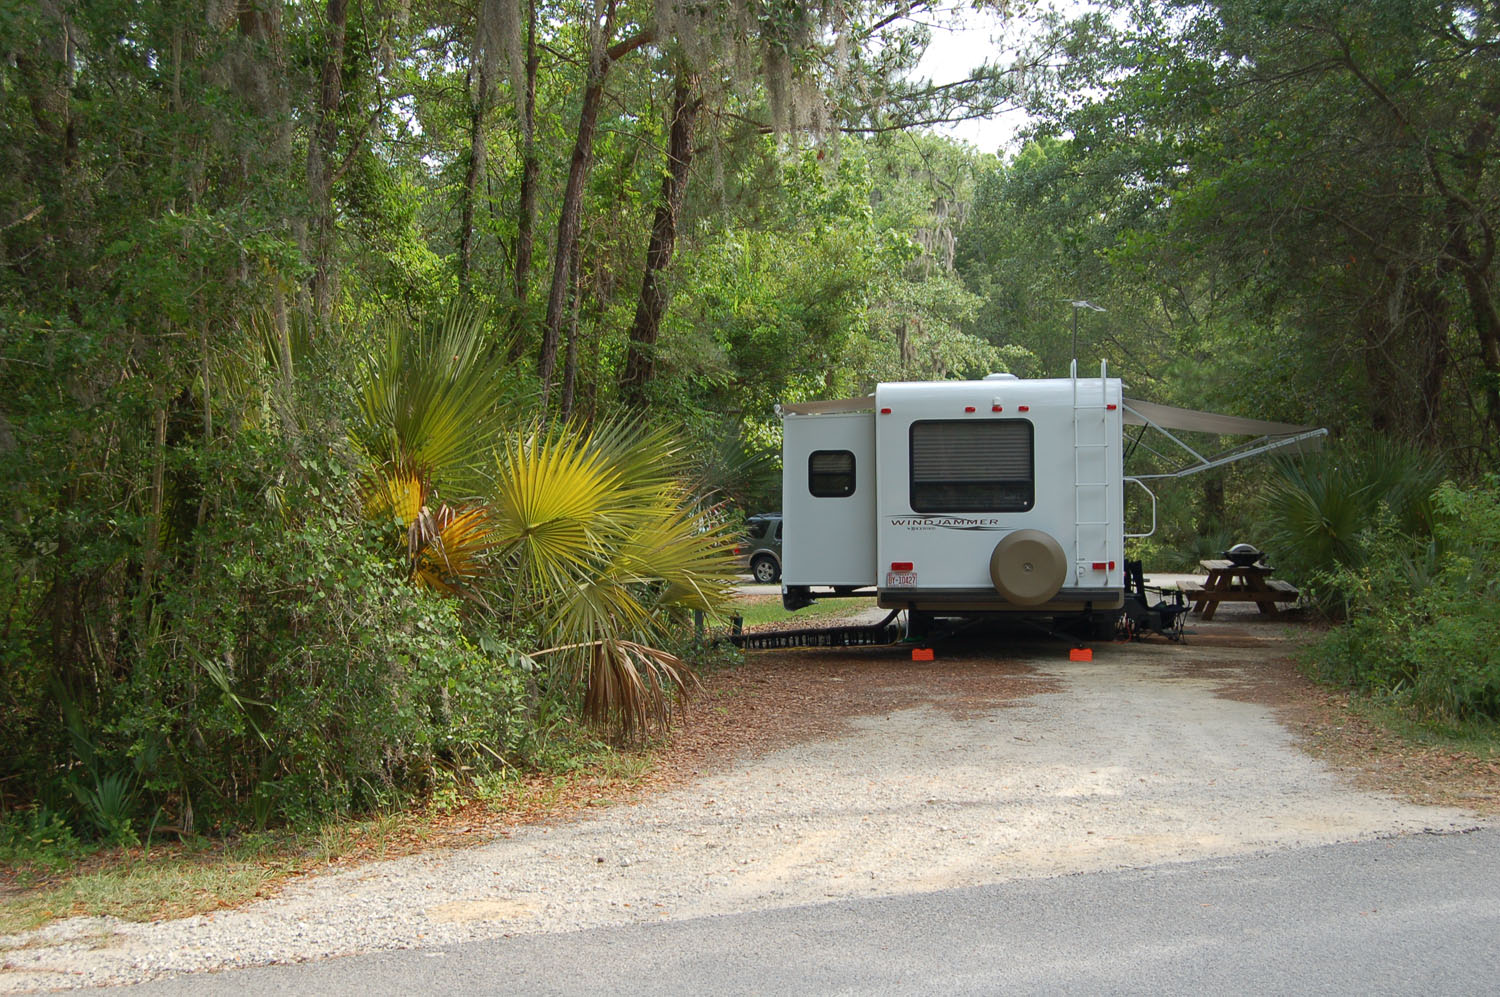 Image of campsite #31 at the Campground at James Island County Park